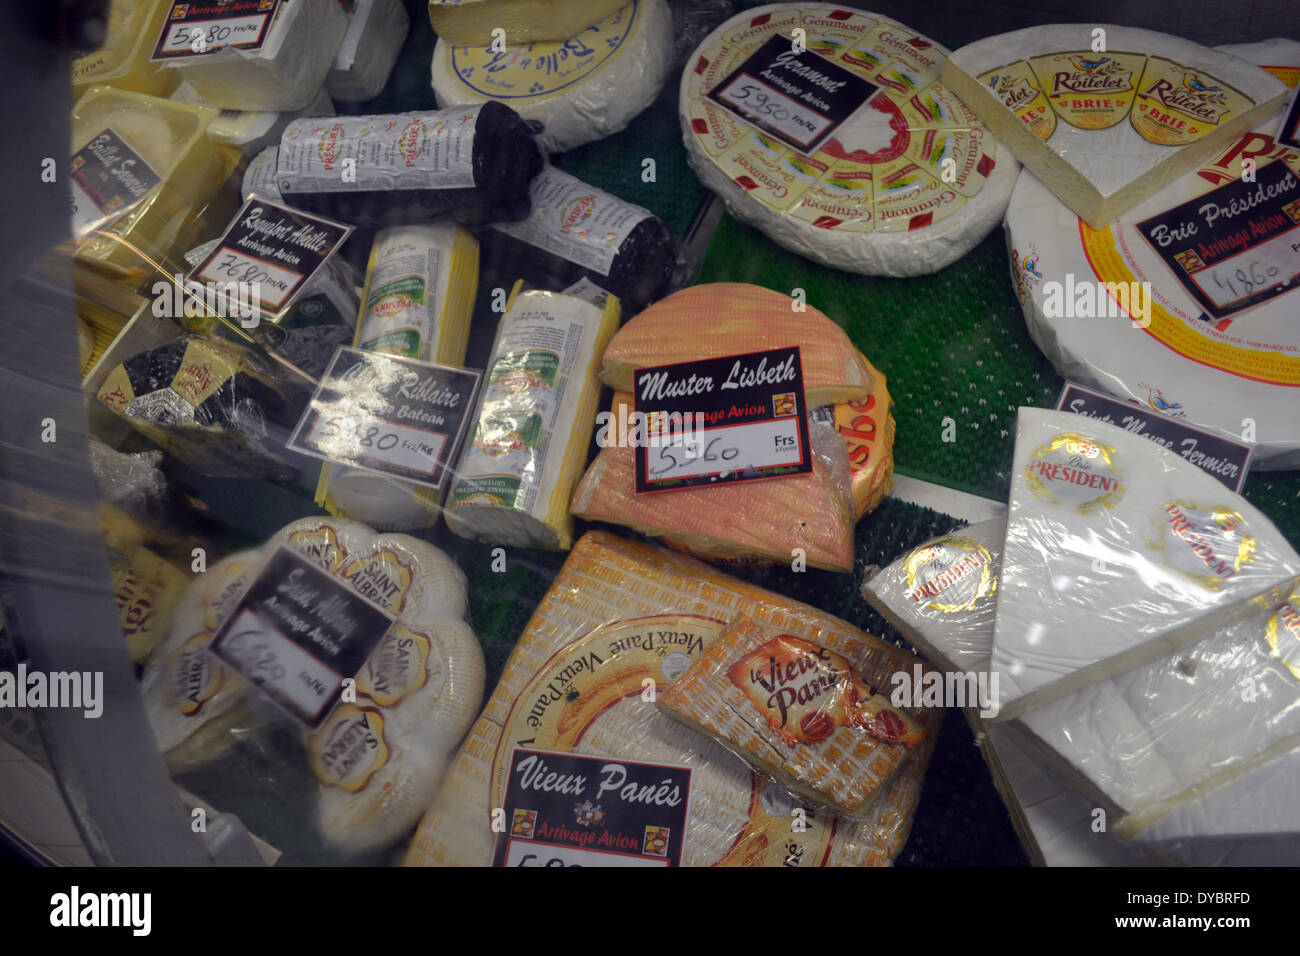 Imported French cheese in the supermarket in Matautu, traces of the French influence in Wallis Island, Wallis and Futuna - Stock Image